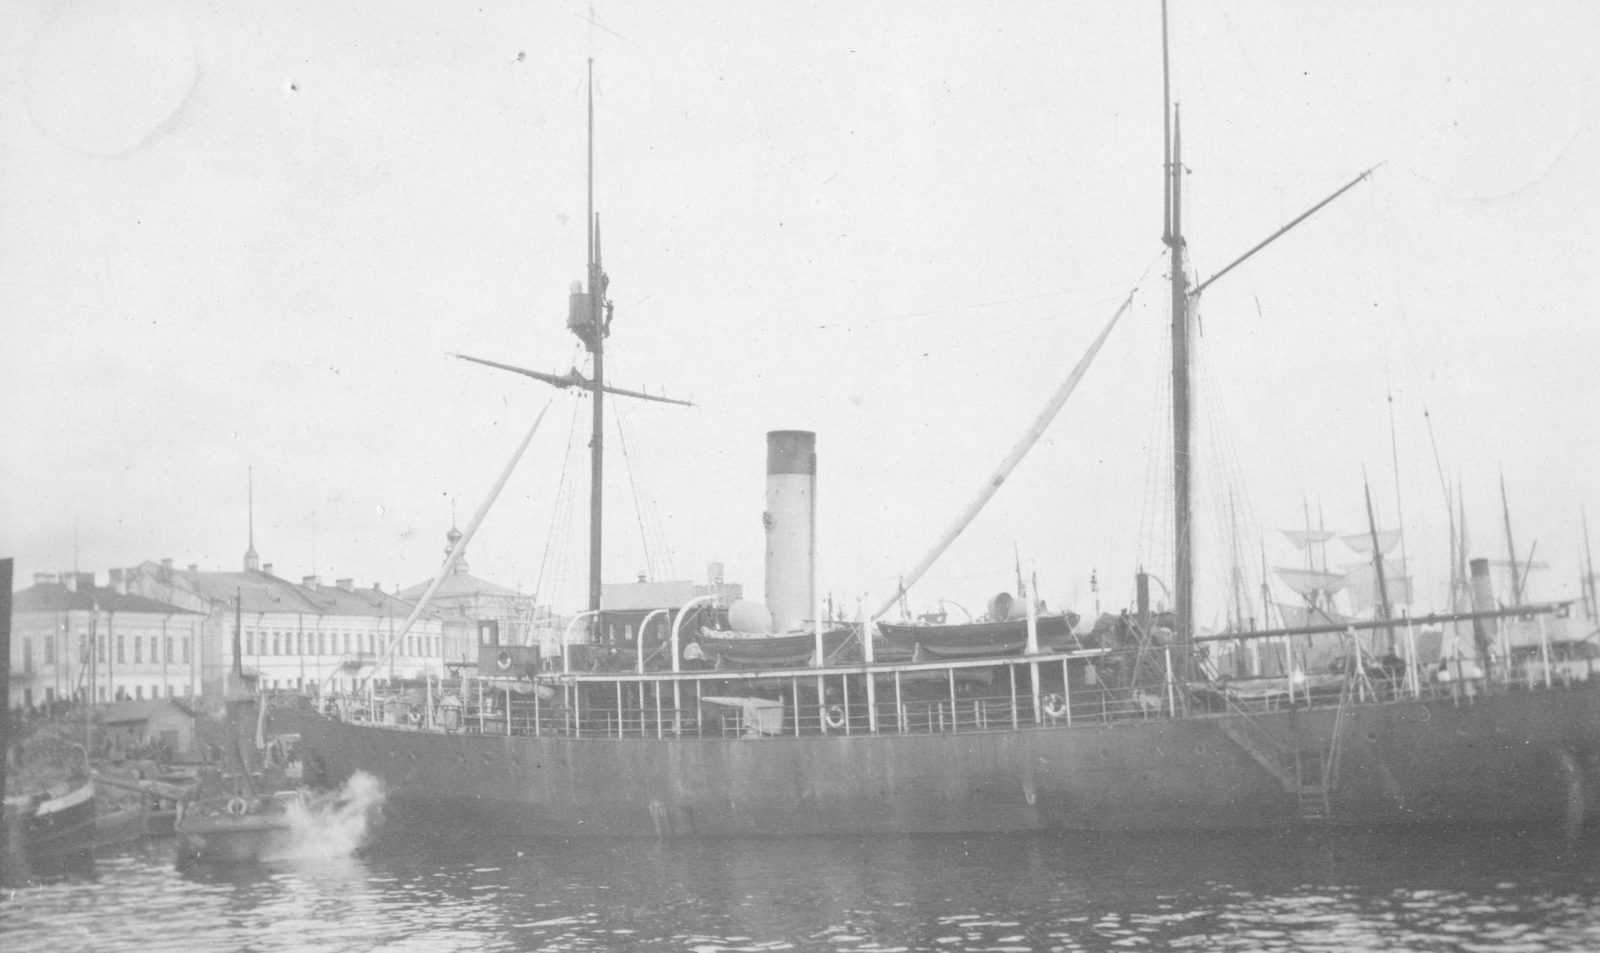 Steamer in the Port of Arkhangelsk